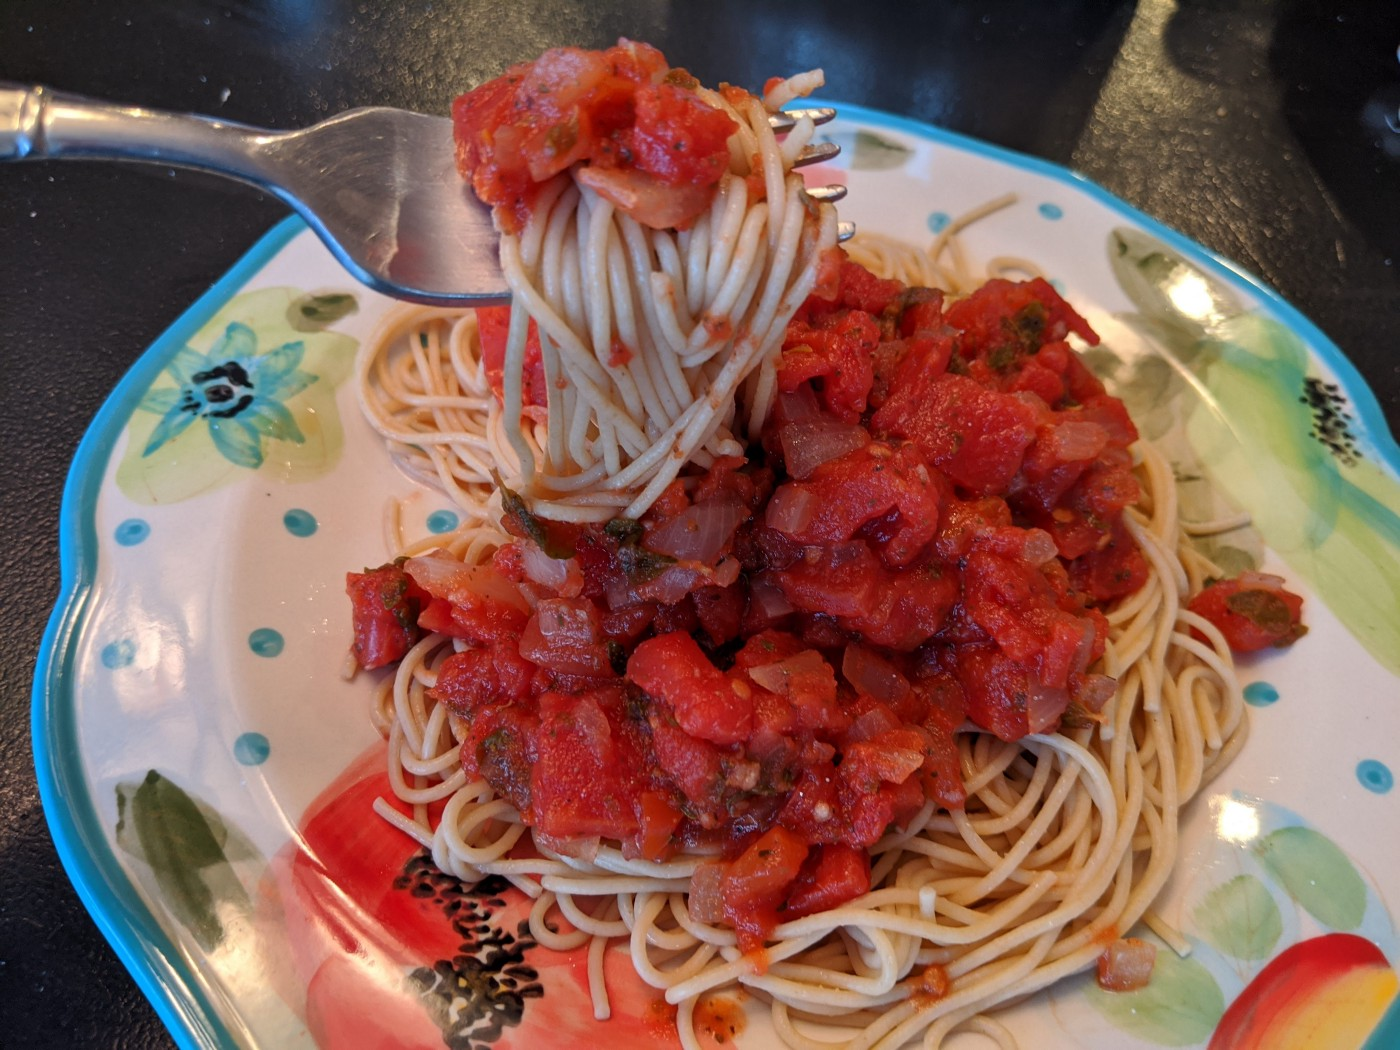 A plate of plant-based spaghetti sauce served over spaghetti noodles.